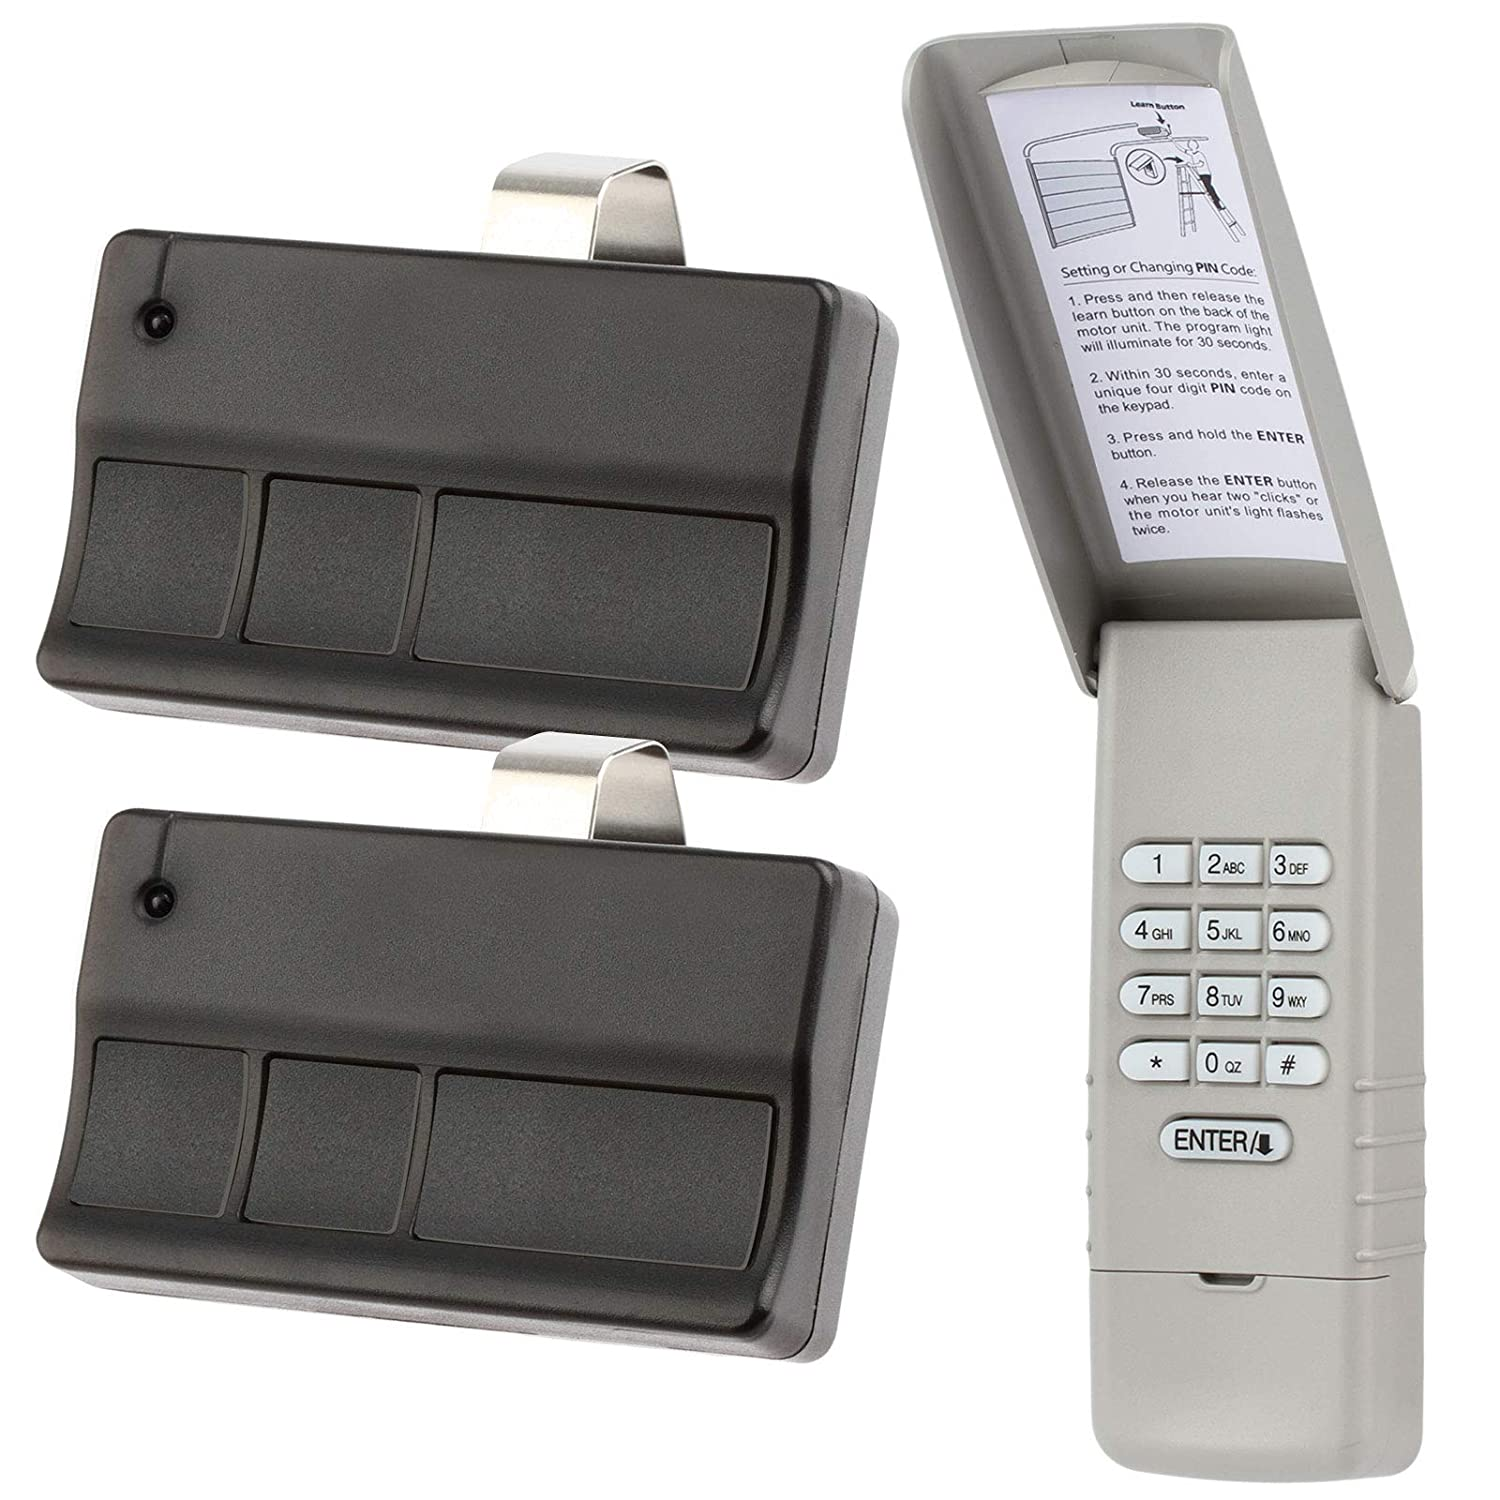 Keypad and 2 Remotes for Liftmaster Garage Door Opener (373LM + 377LM) 315mhz Purple Learn Button